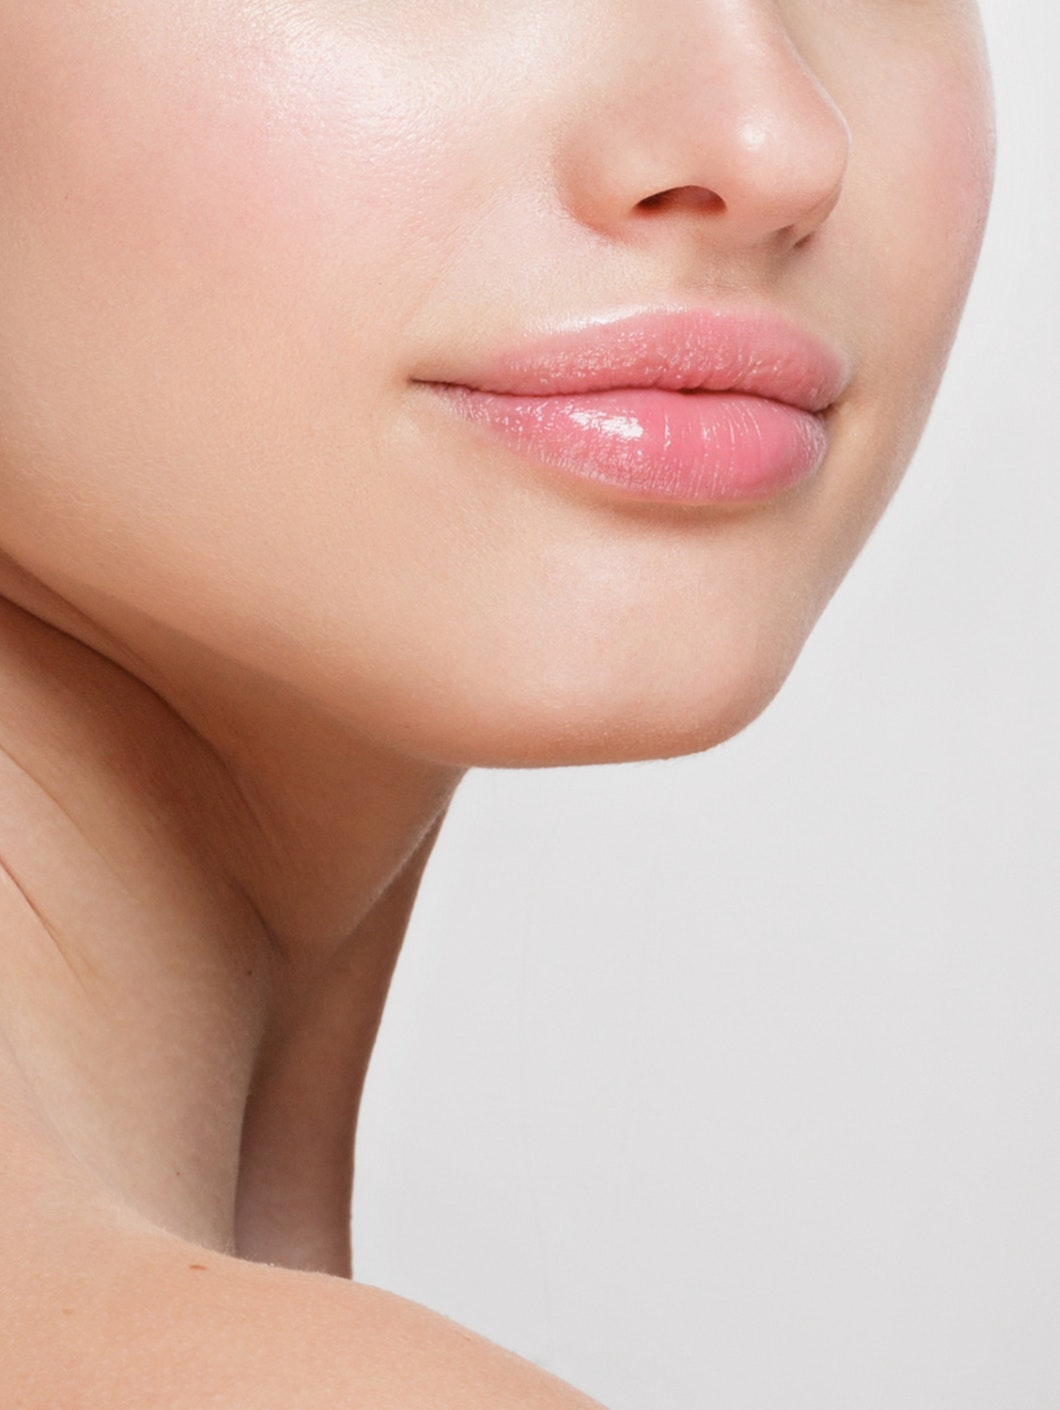 What are Injectable Fillers?